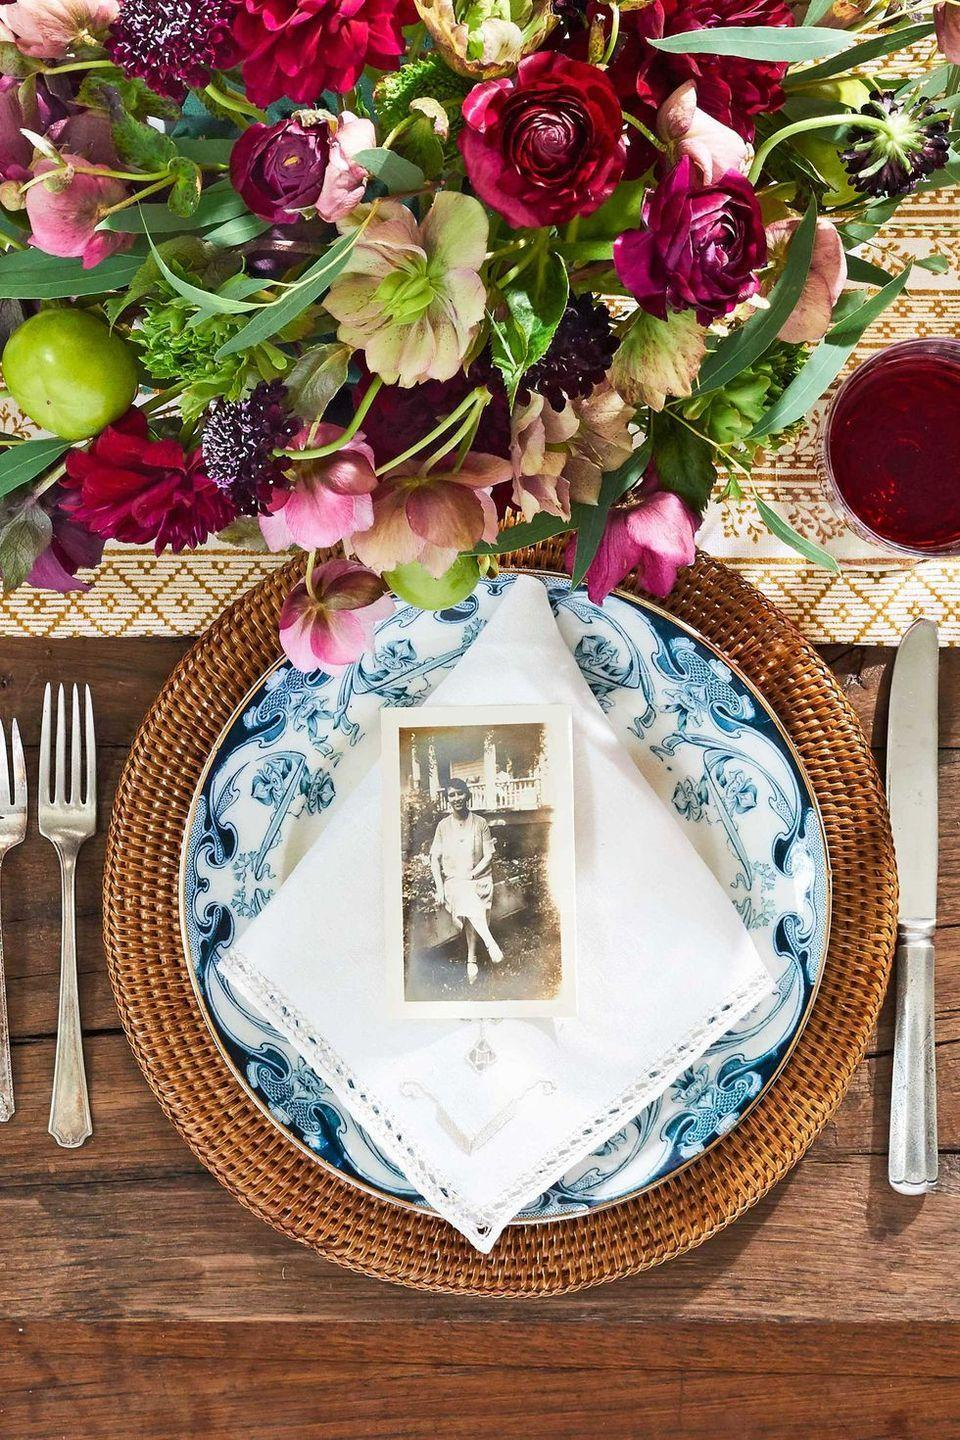 "<p>When it comes to your Thanksgiving <a href=""https://www.countryliving.com/entertaining/g1219/fall-dinner-party"" rel=""nofollow noopener"" target=""_blank"" data-ylk=""slk:table decor"" class=""link rapid-noclick-resp"">table decor</a>, beauty and elegance matters—but so does a homey sense of family. This inspired idea calls for using old family photos to help guests find their seats. It's bound to be an excellent conversation starter too.</p><p><a class=""link rapid-noclick-resp"" href=""https://www.amazon.com/Artifacts-Trading-Company-Rattan-Charger/dp/B00O8ZJR0M?tag=syn-yahoo-20&ascsubtag=%5Bartid%7C10050.g.1538%5Bsrc%7Cyahoo-us"" rel=""nofollow noopener"" target=""_blank"" data-ylk=""slk:SHOP WOVEN CHARGERS"">SHOP WOVEN CHARGERS</a></p>"